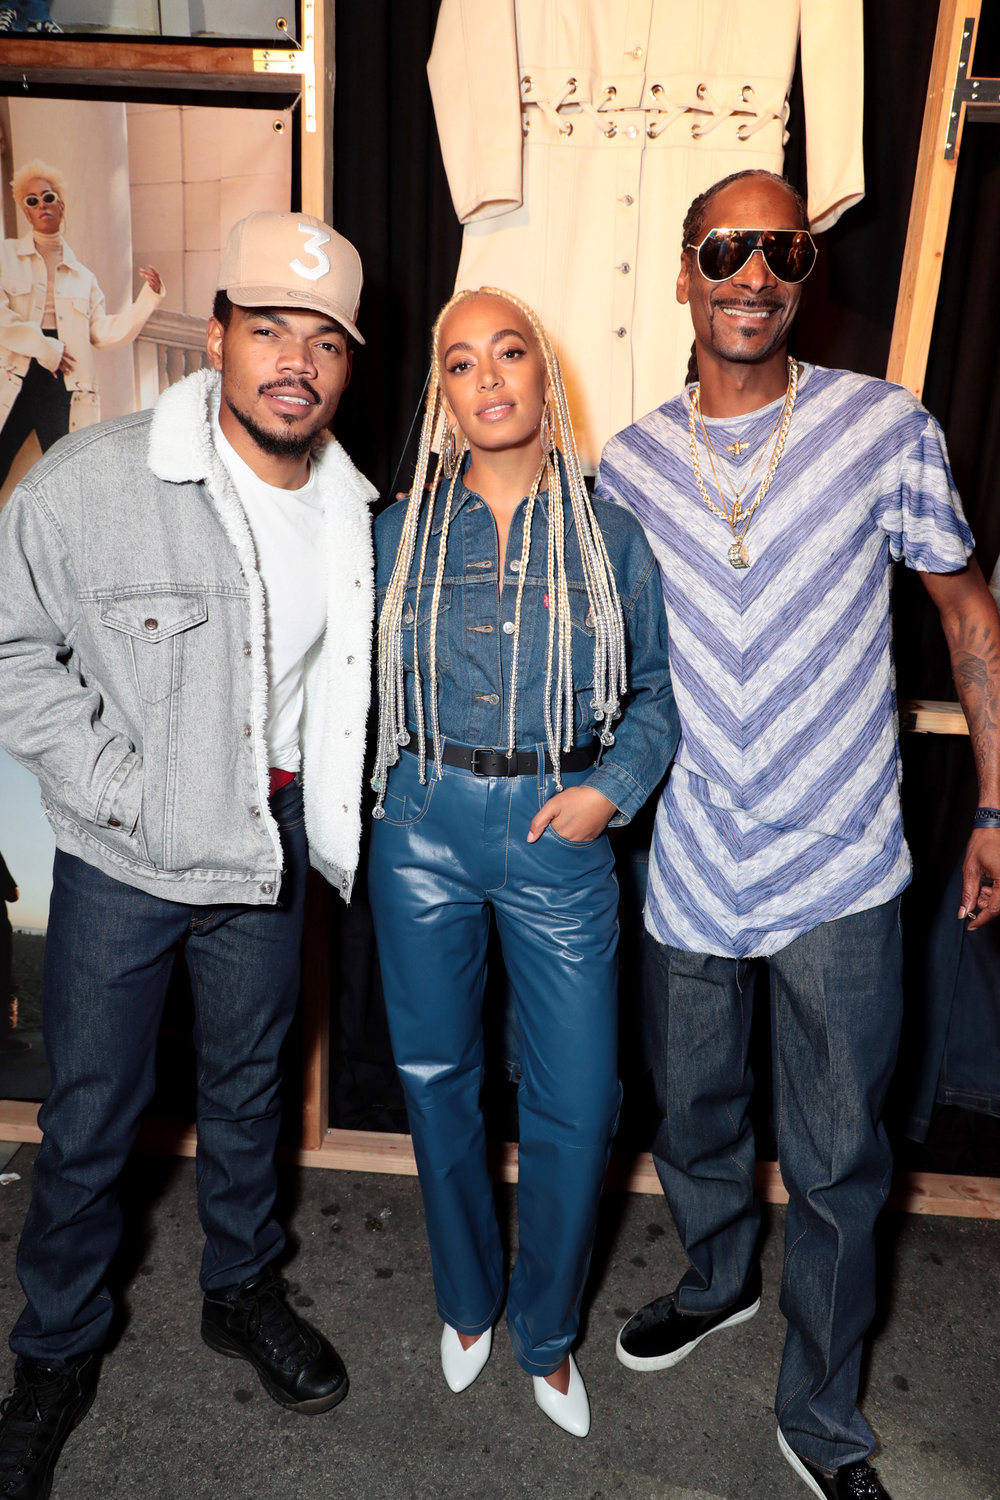 Levi's® Trucker 50th Anniversary, Chance the Rapper, Solange Knowles, Snoop Dogg.jpg